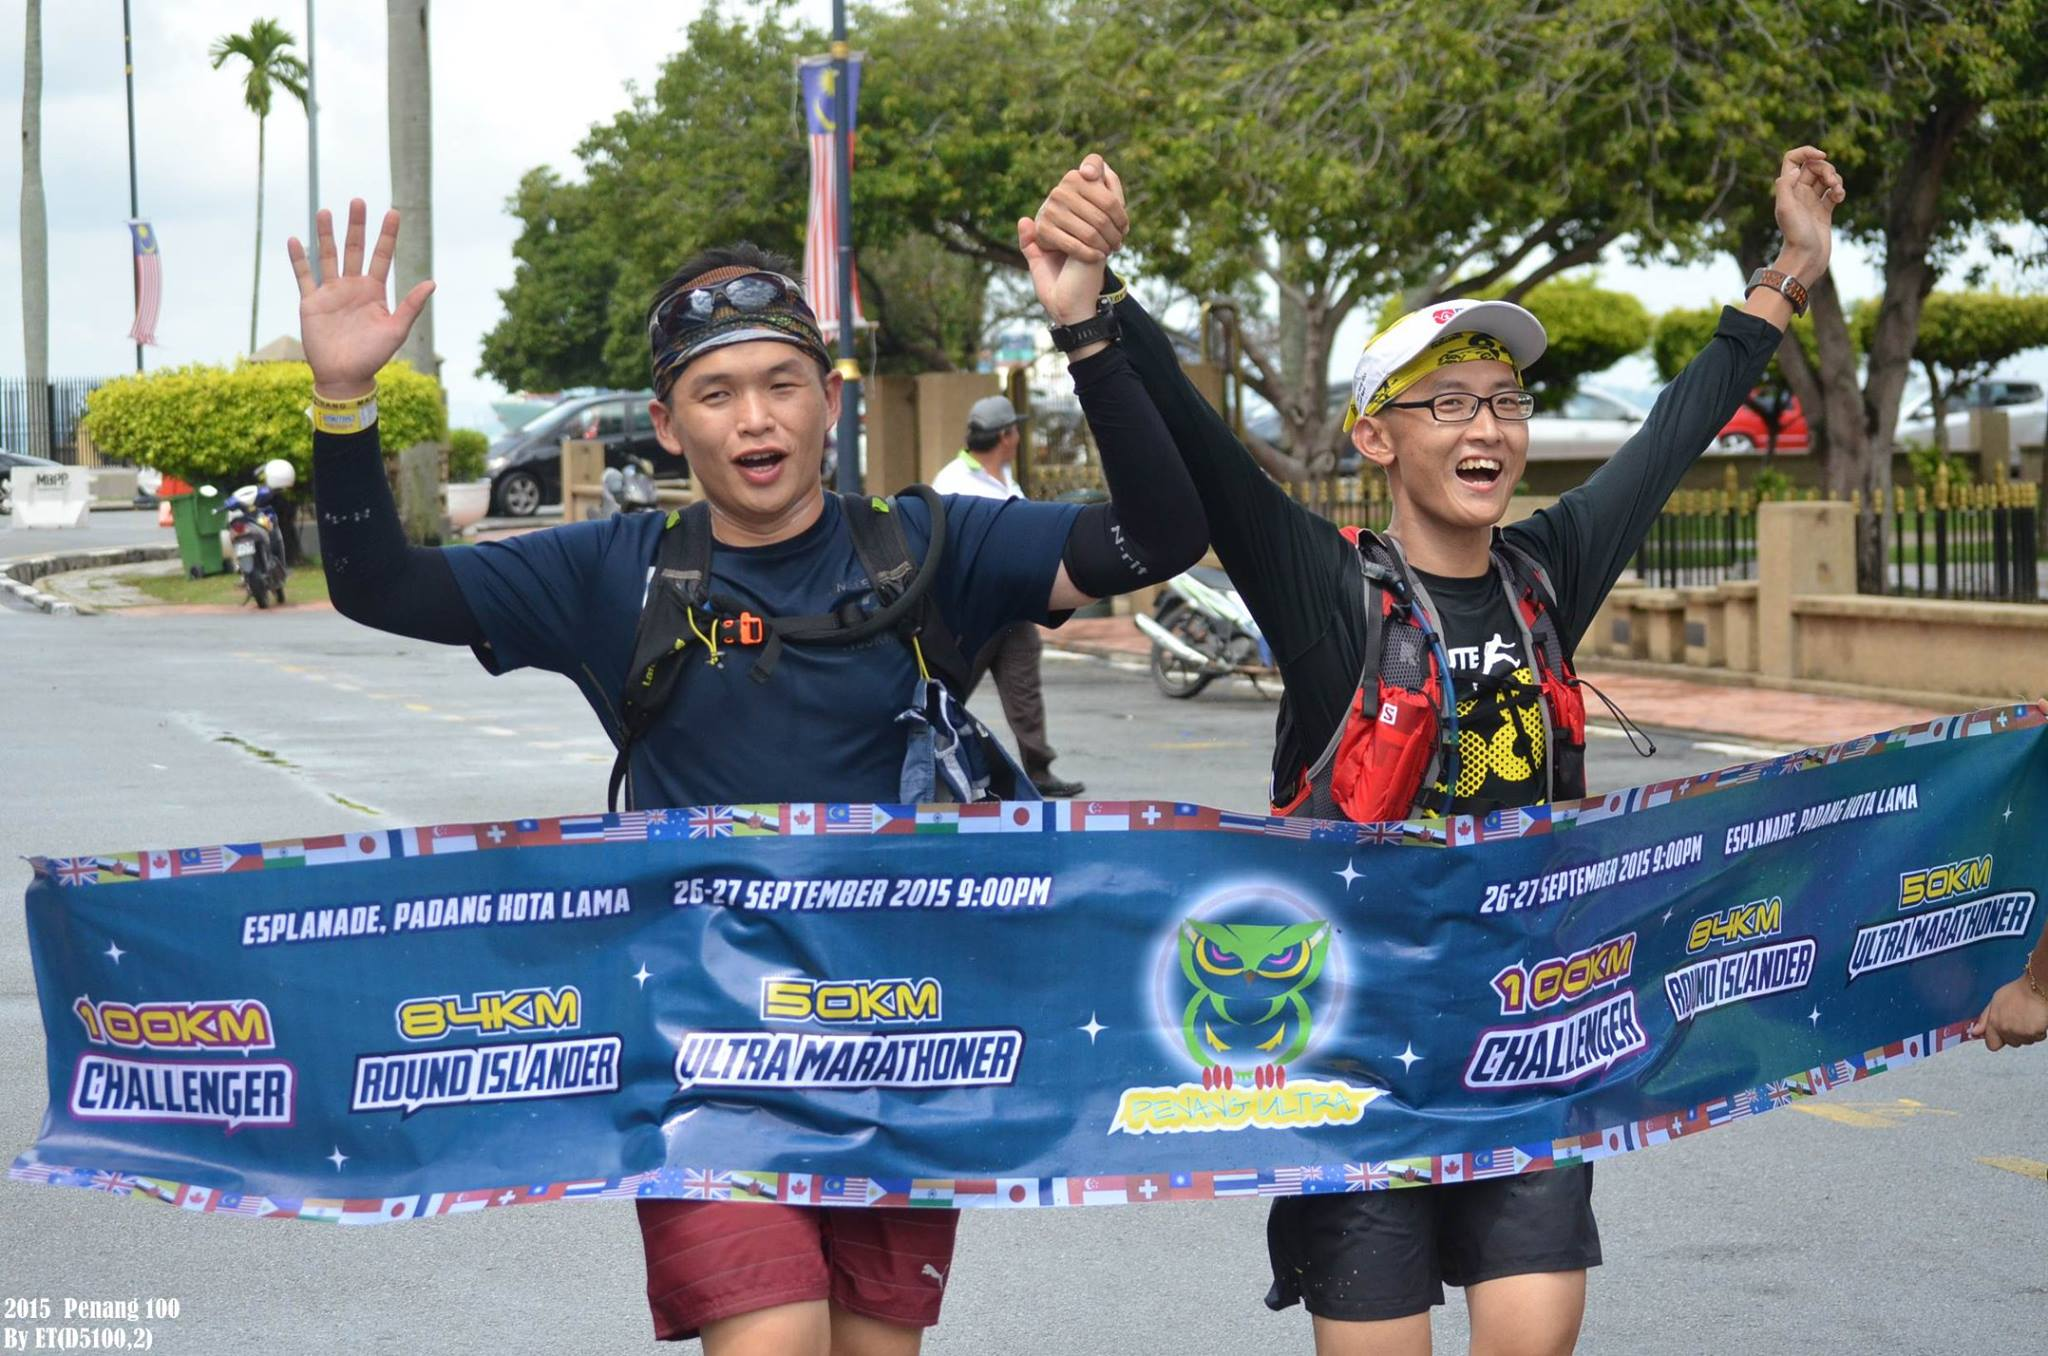 Penang Ultra 2015 - finally completed with Tong Lai